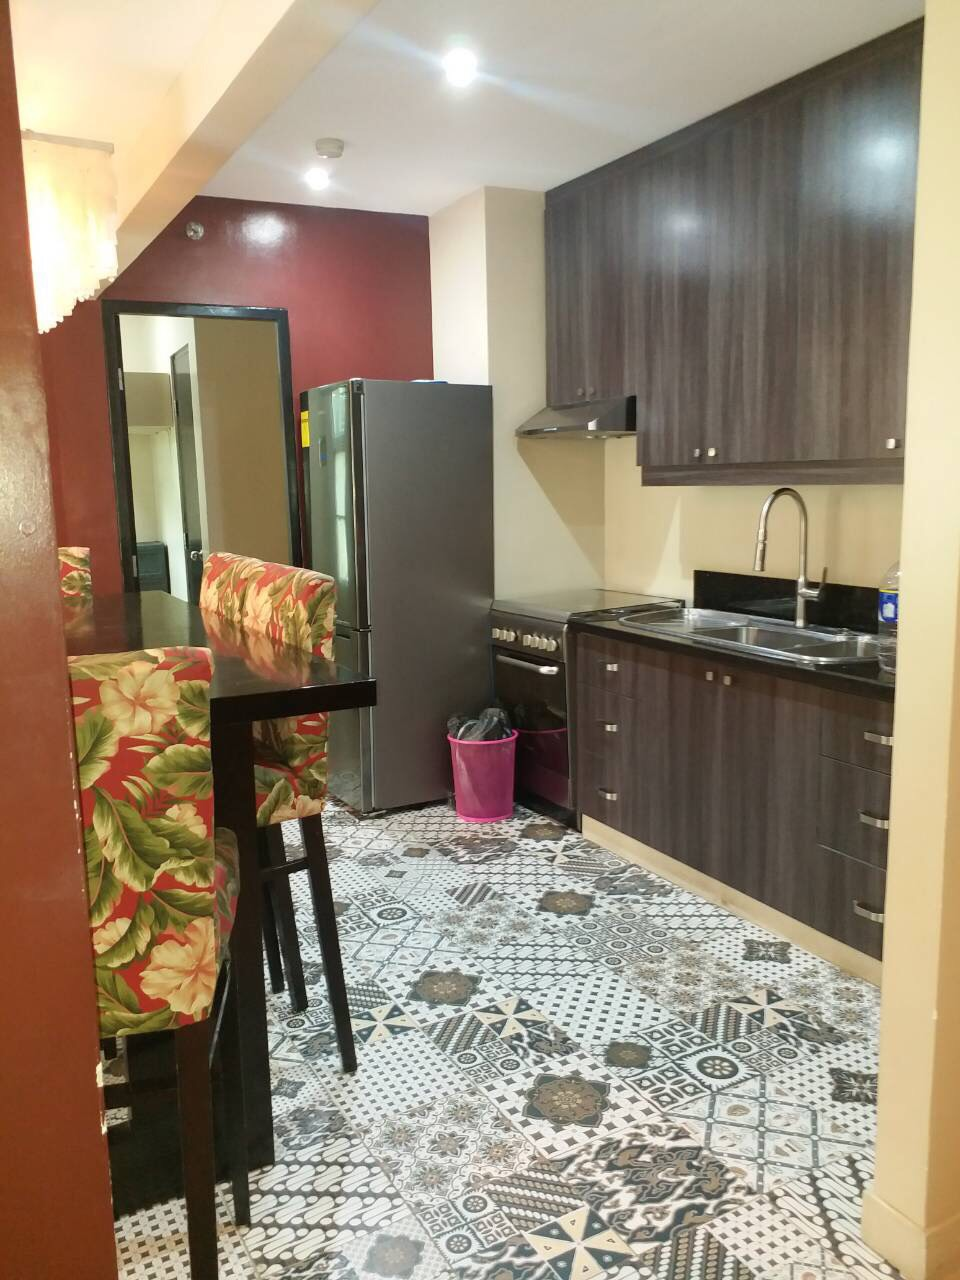 For Rent, Almond, Two Serendra, BGC, Taguig City View 1